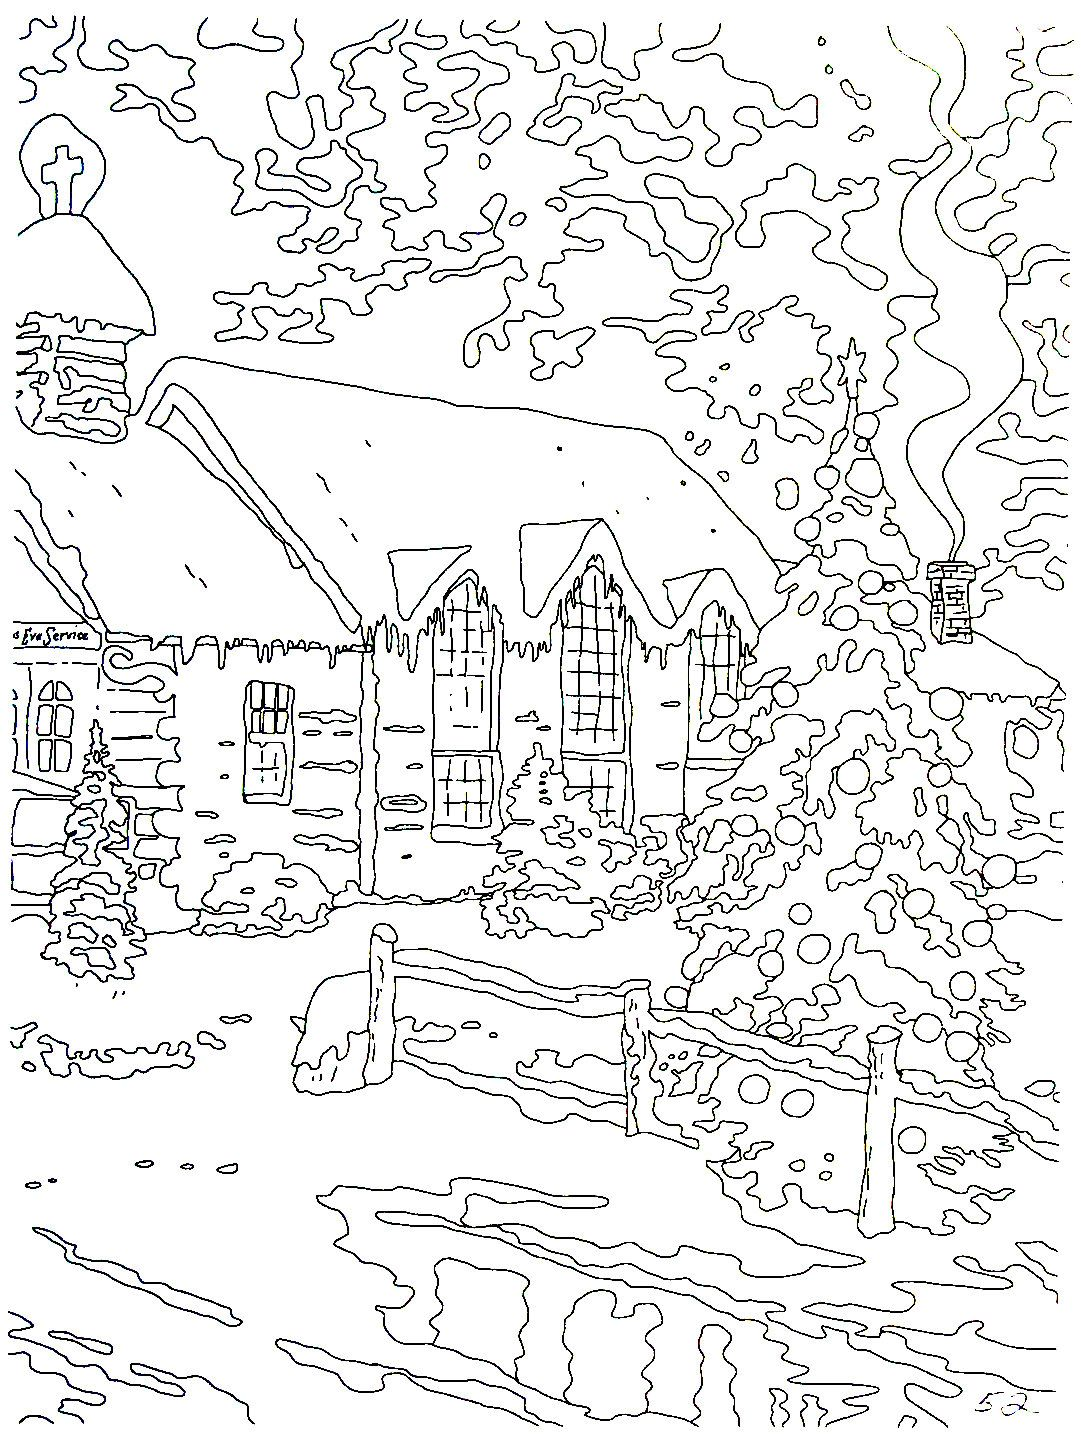 Christmas chapel i thomas kinkade painting coloring book printable page